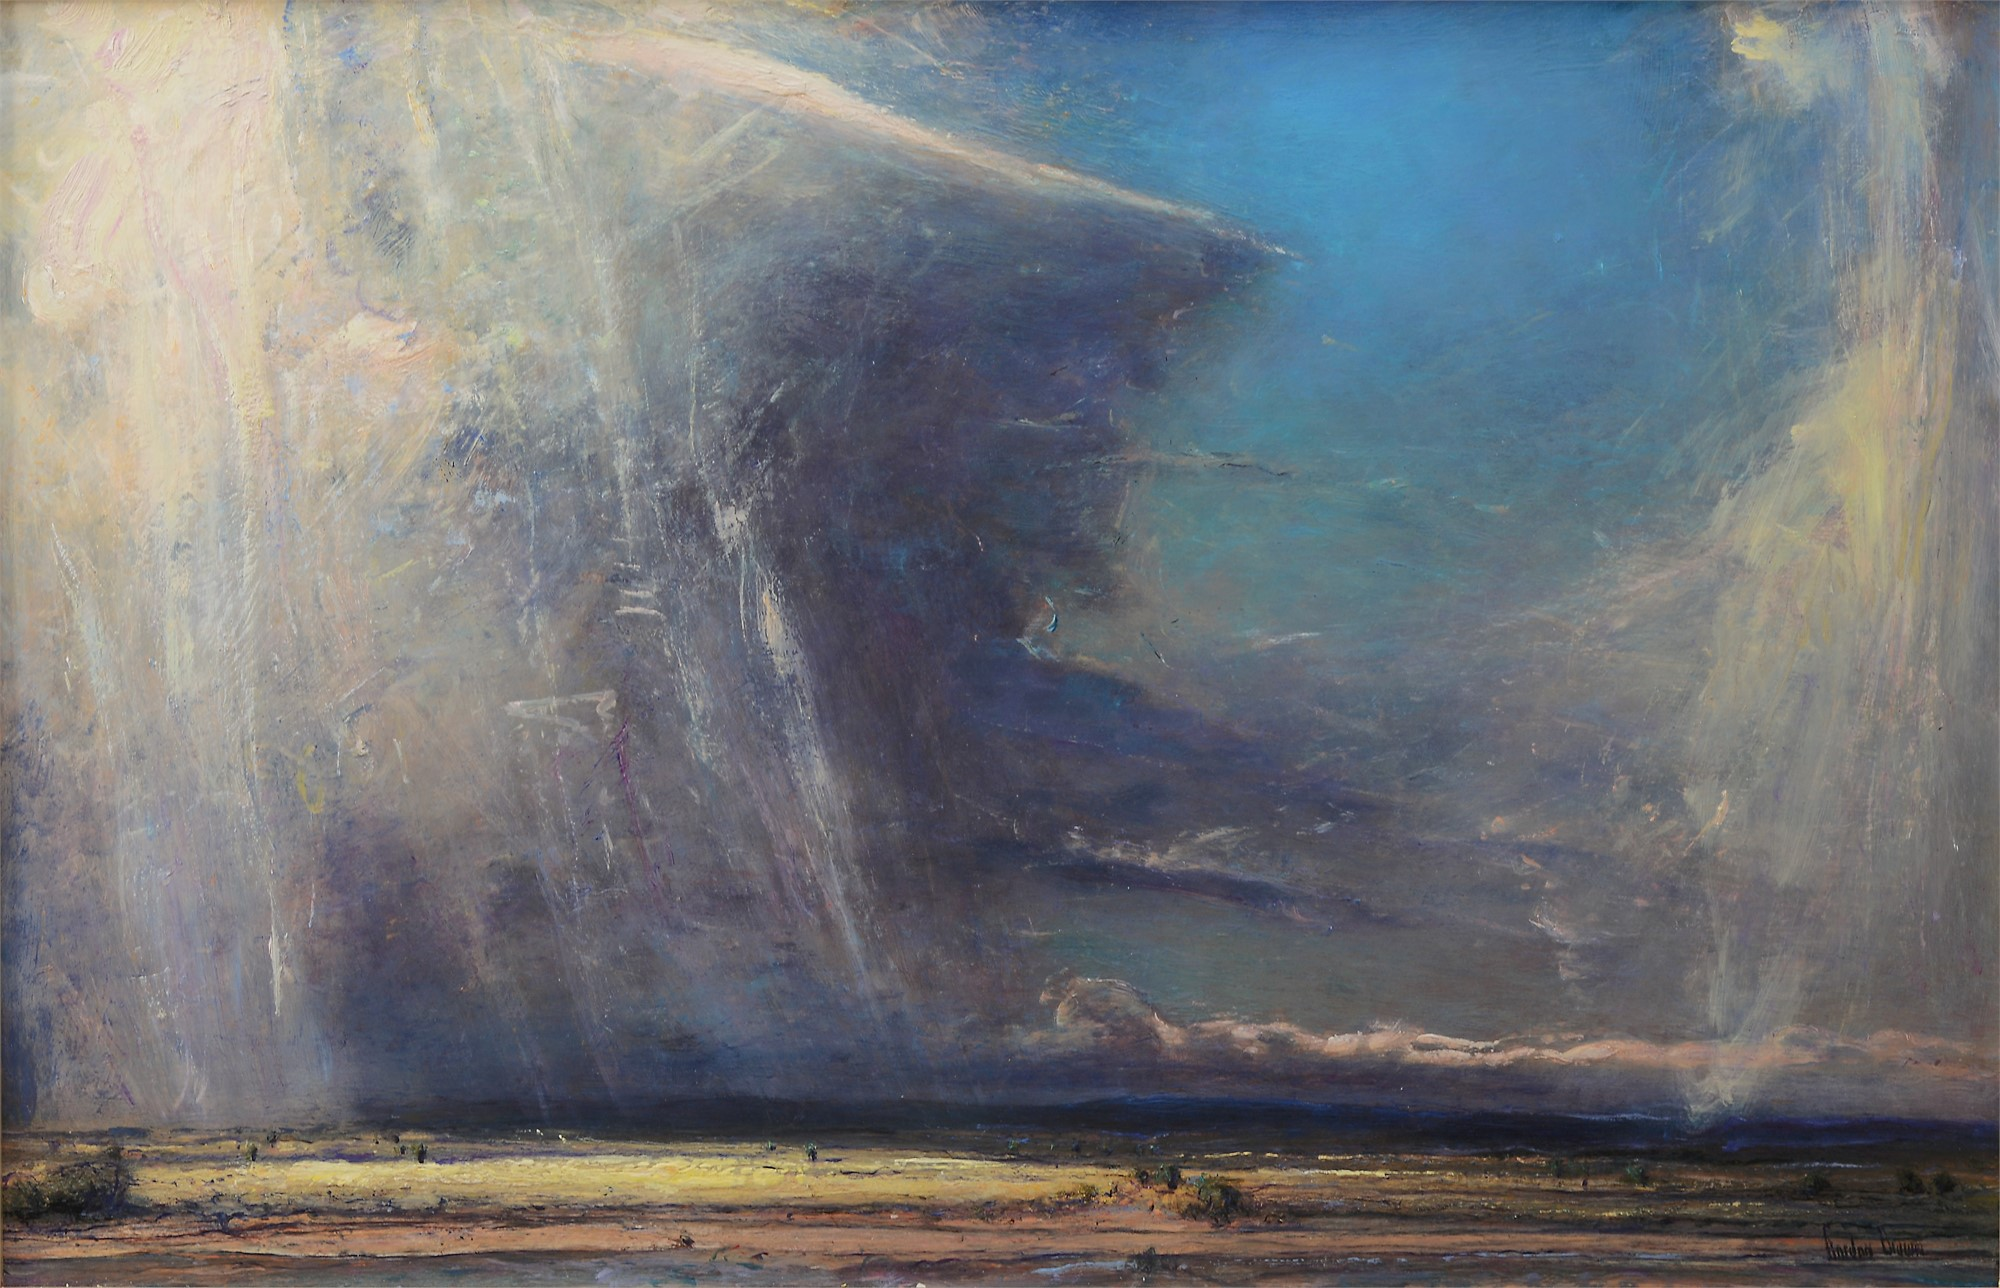 The Edge of the Storm by Gordon Brown